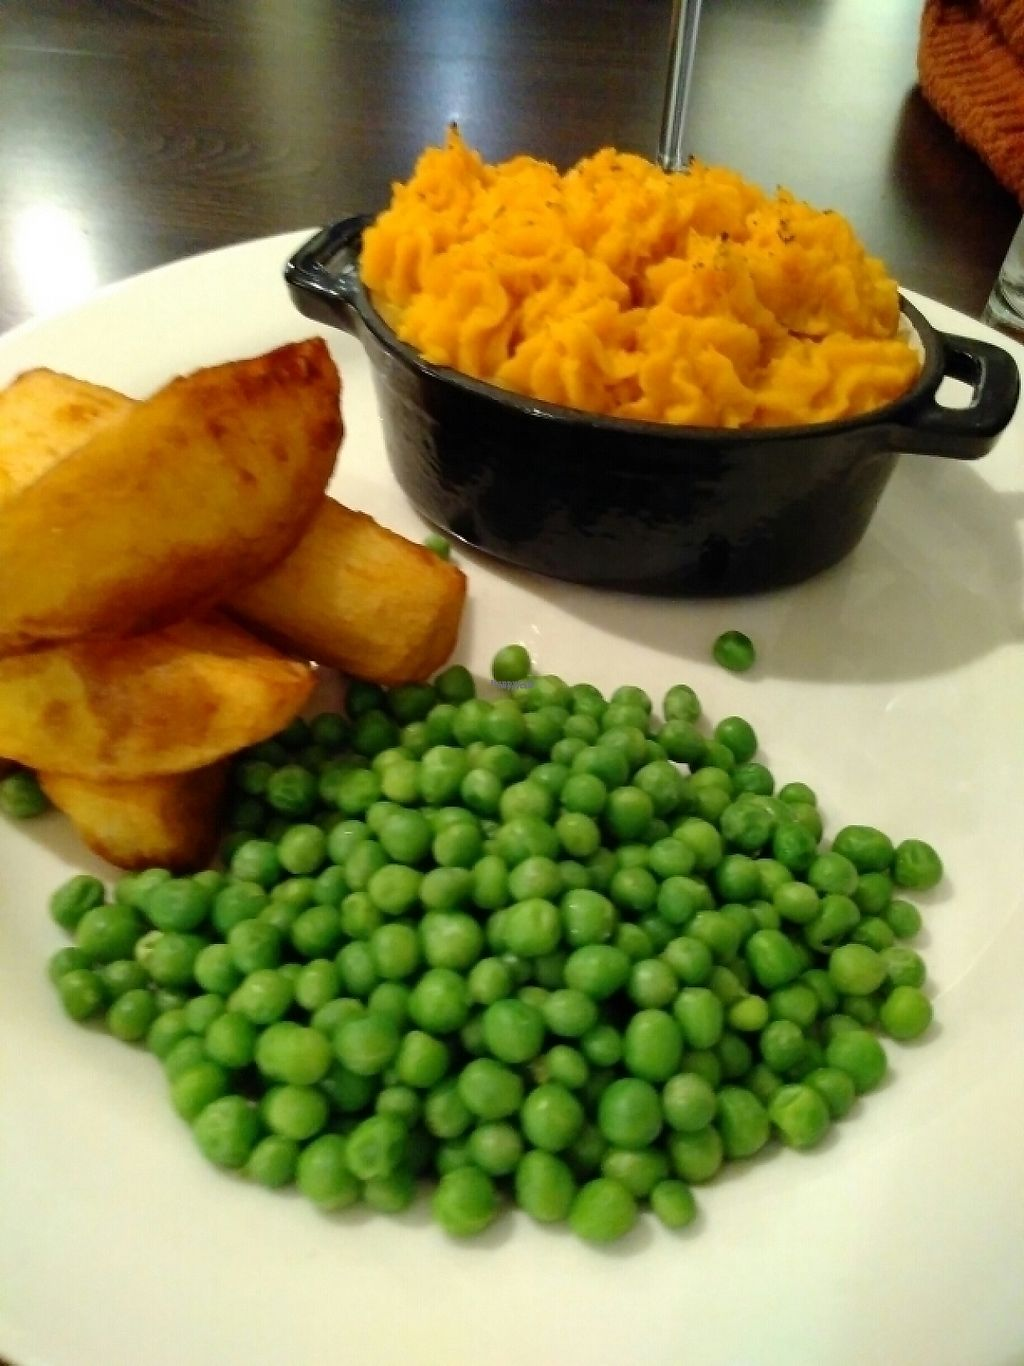 """Photo of Fjara Cafe Bar  by <a href=""""/members/profile/helenstrong"""">helenstrong</a> <br/>Vegan shepherd's pie with peas and chunky fries <br/> February 27, 2017  - <a href='/contact/abuse/image/87770/230932'>Report</a>"""